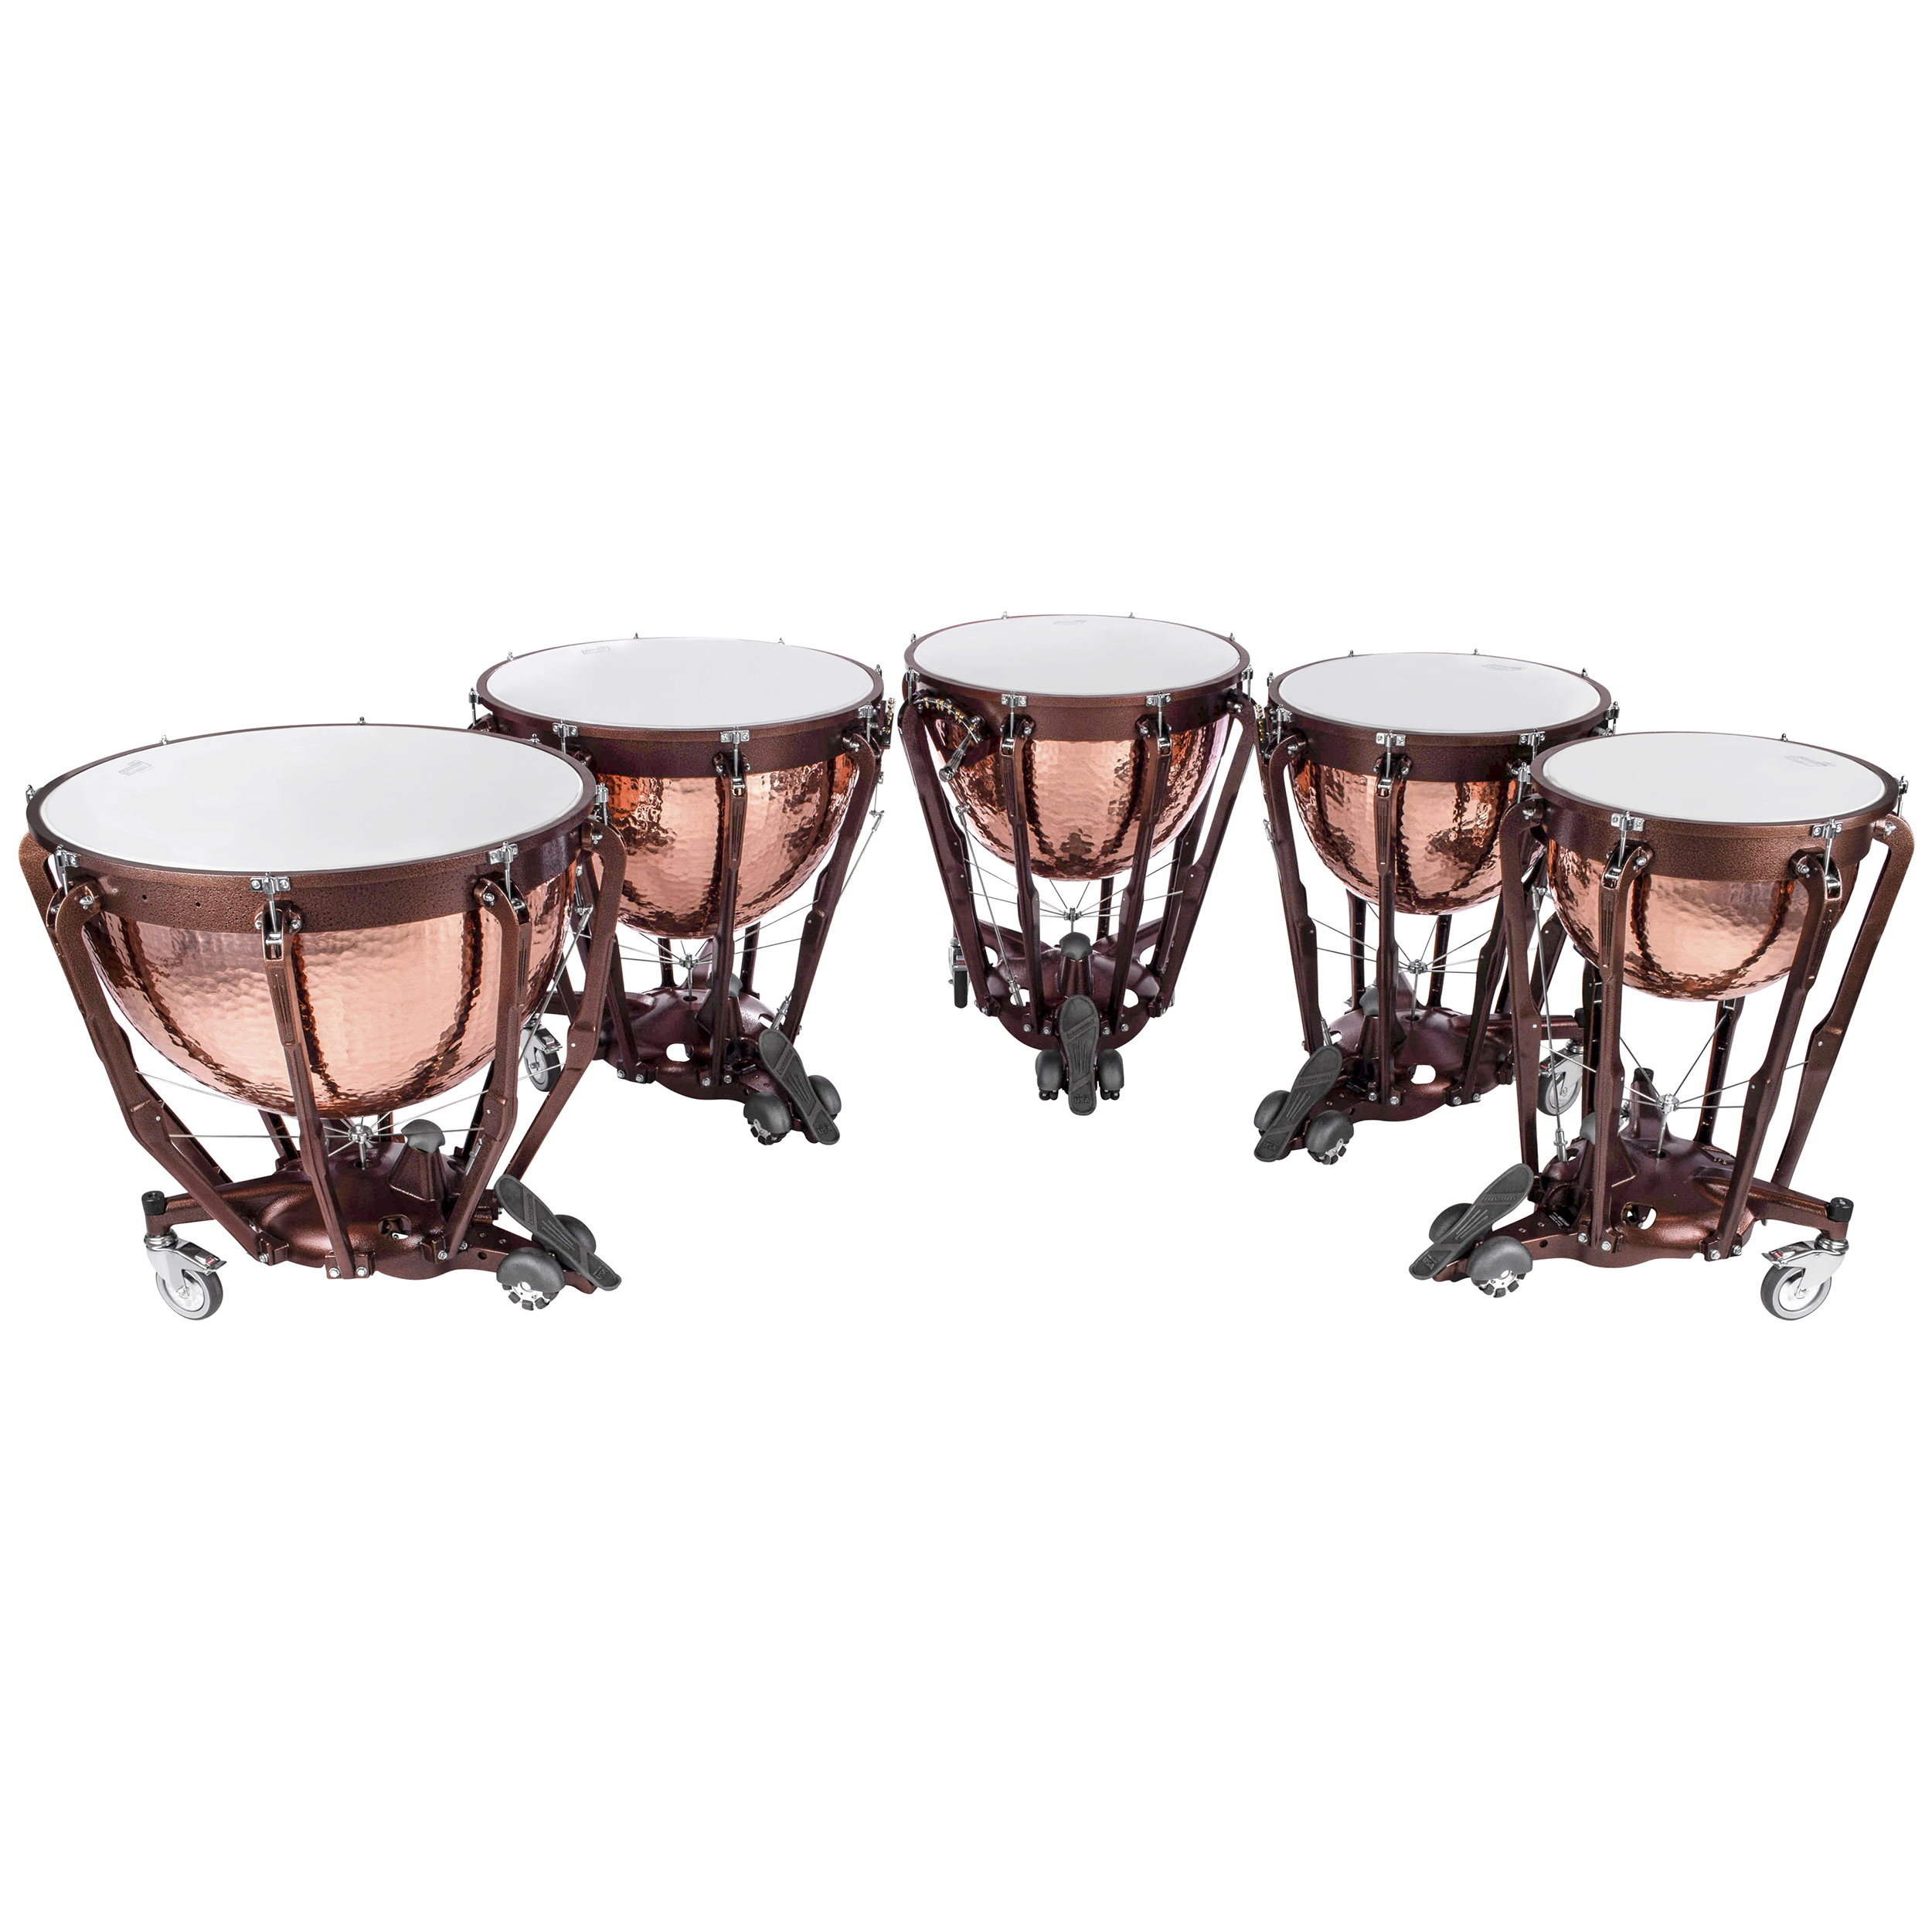 "Ludwig 20/23/26/29/32"" Professional Series Hammered Copper Timpani Set"